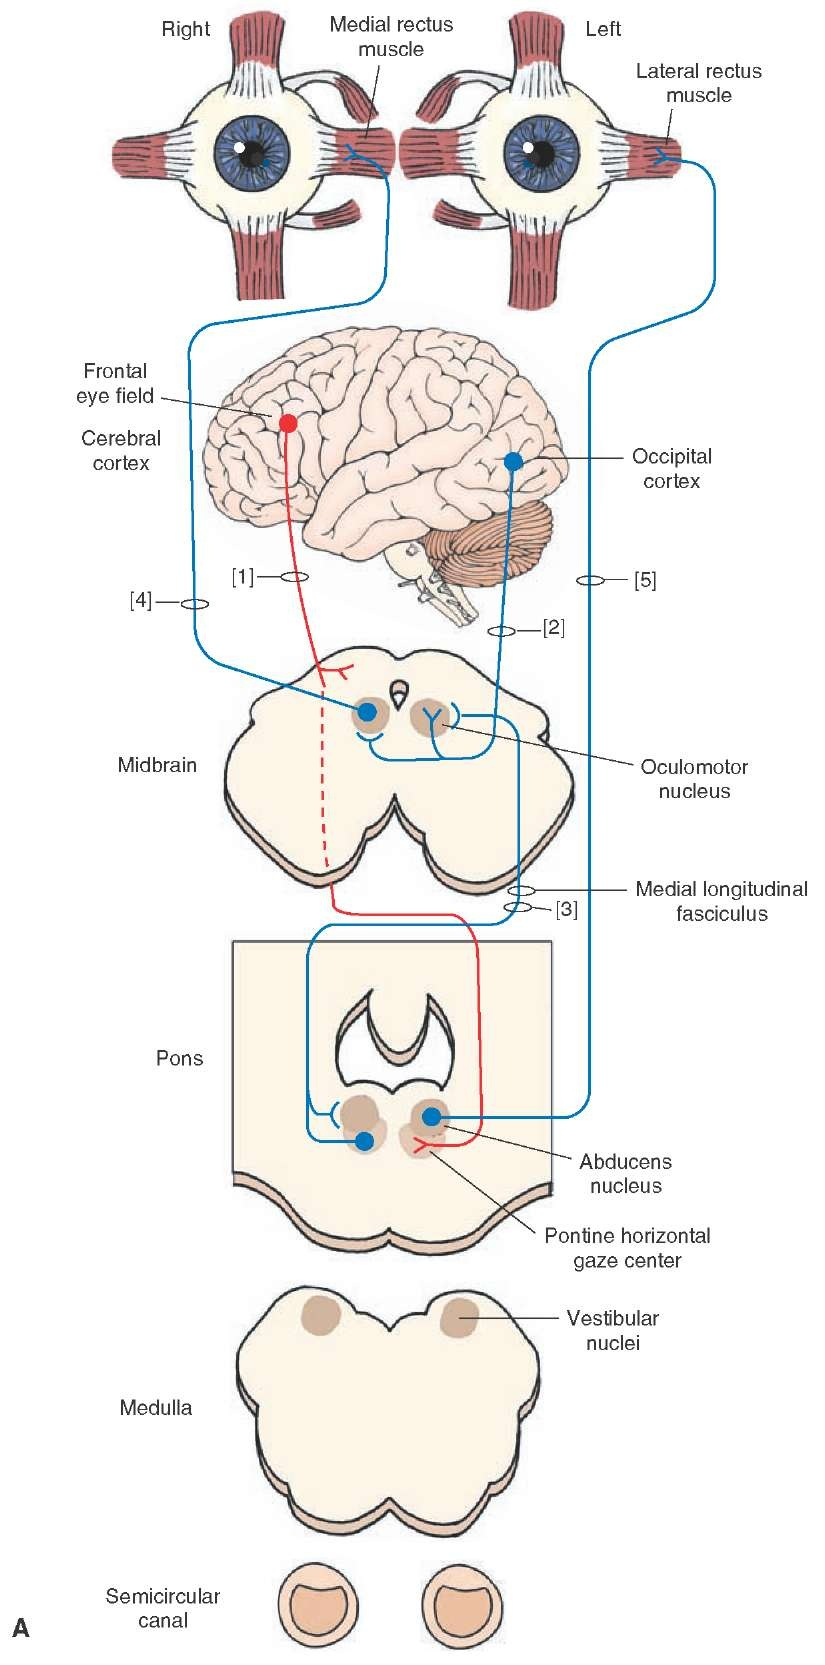 The Cranial Nerves (Organization of the Central Nervous System) Part 4